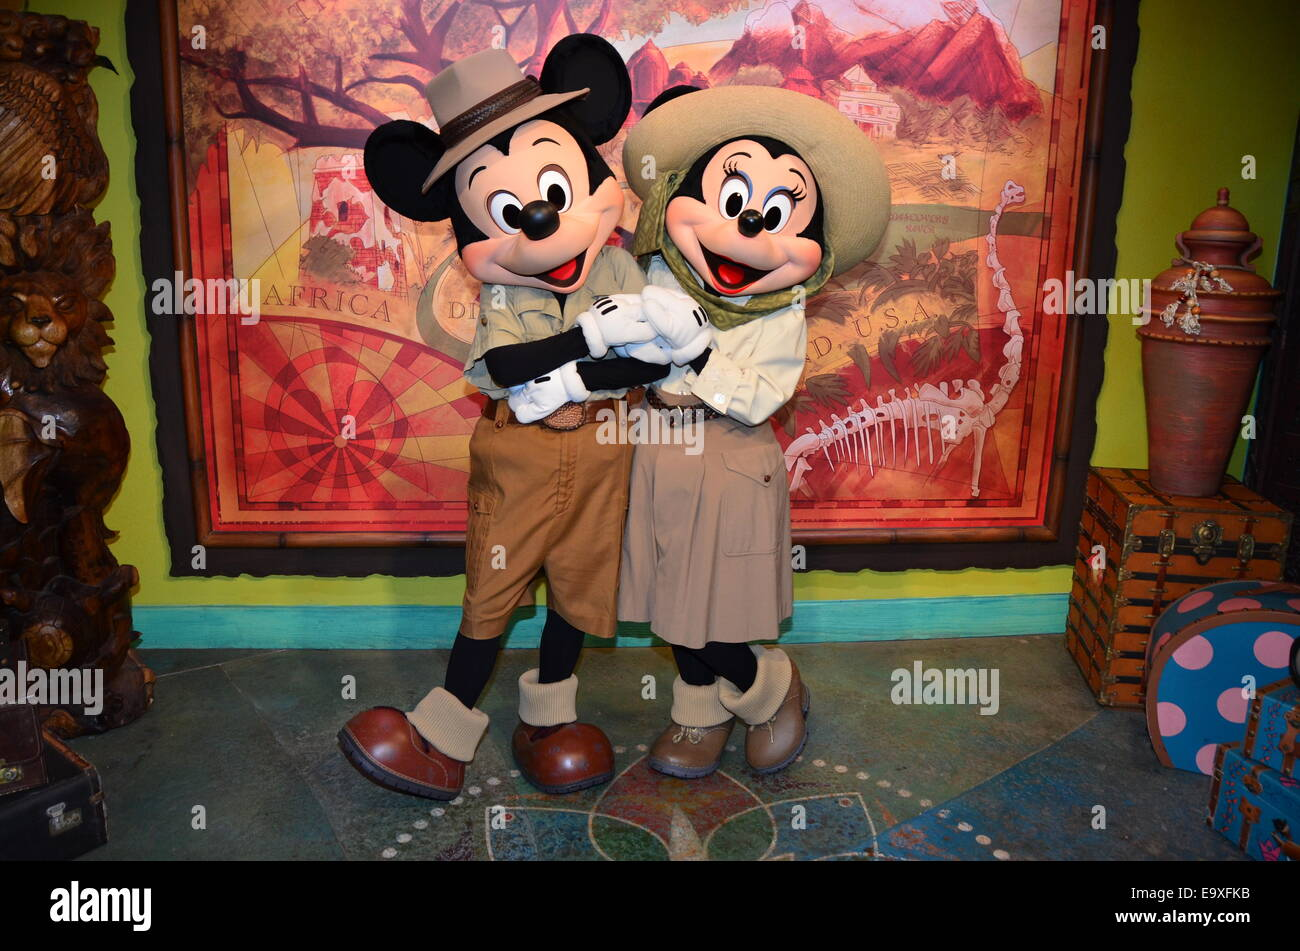 Mickey and Minnie Mouse share a kiss at Animal Kingdom, Walt Disney World, Orlando, Florida. - Stock Image